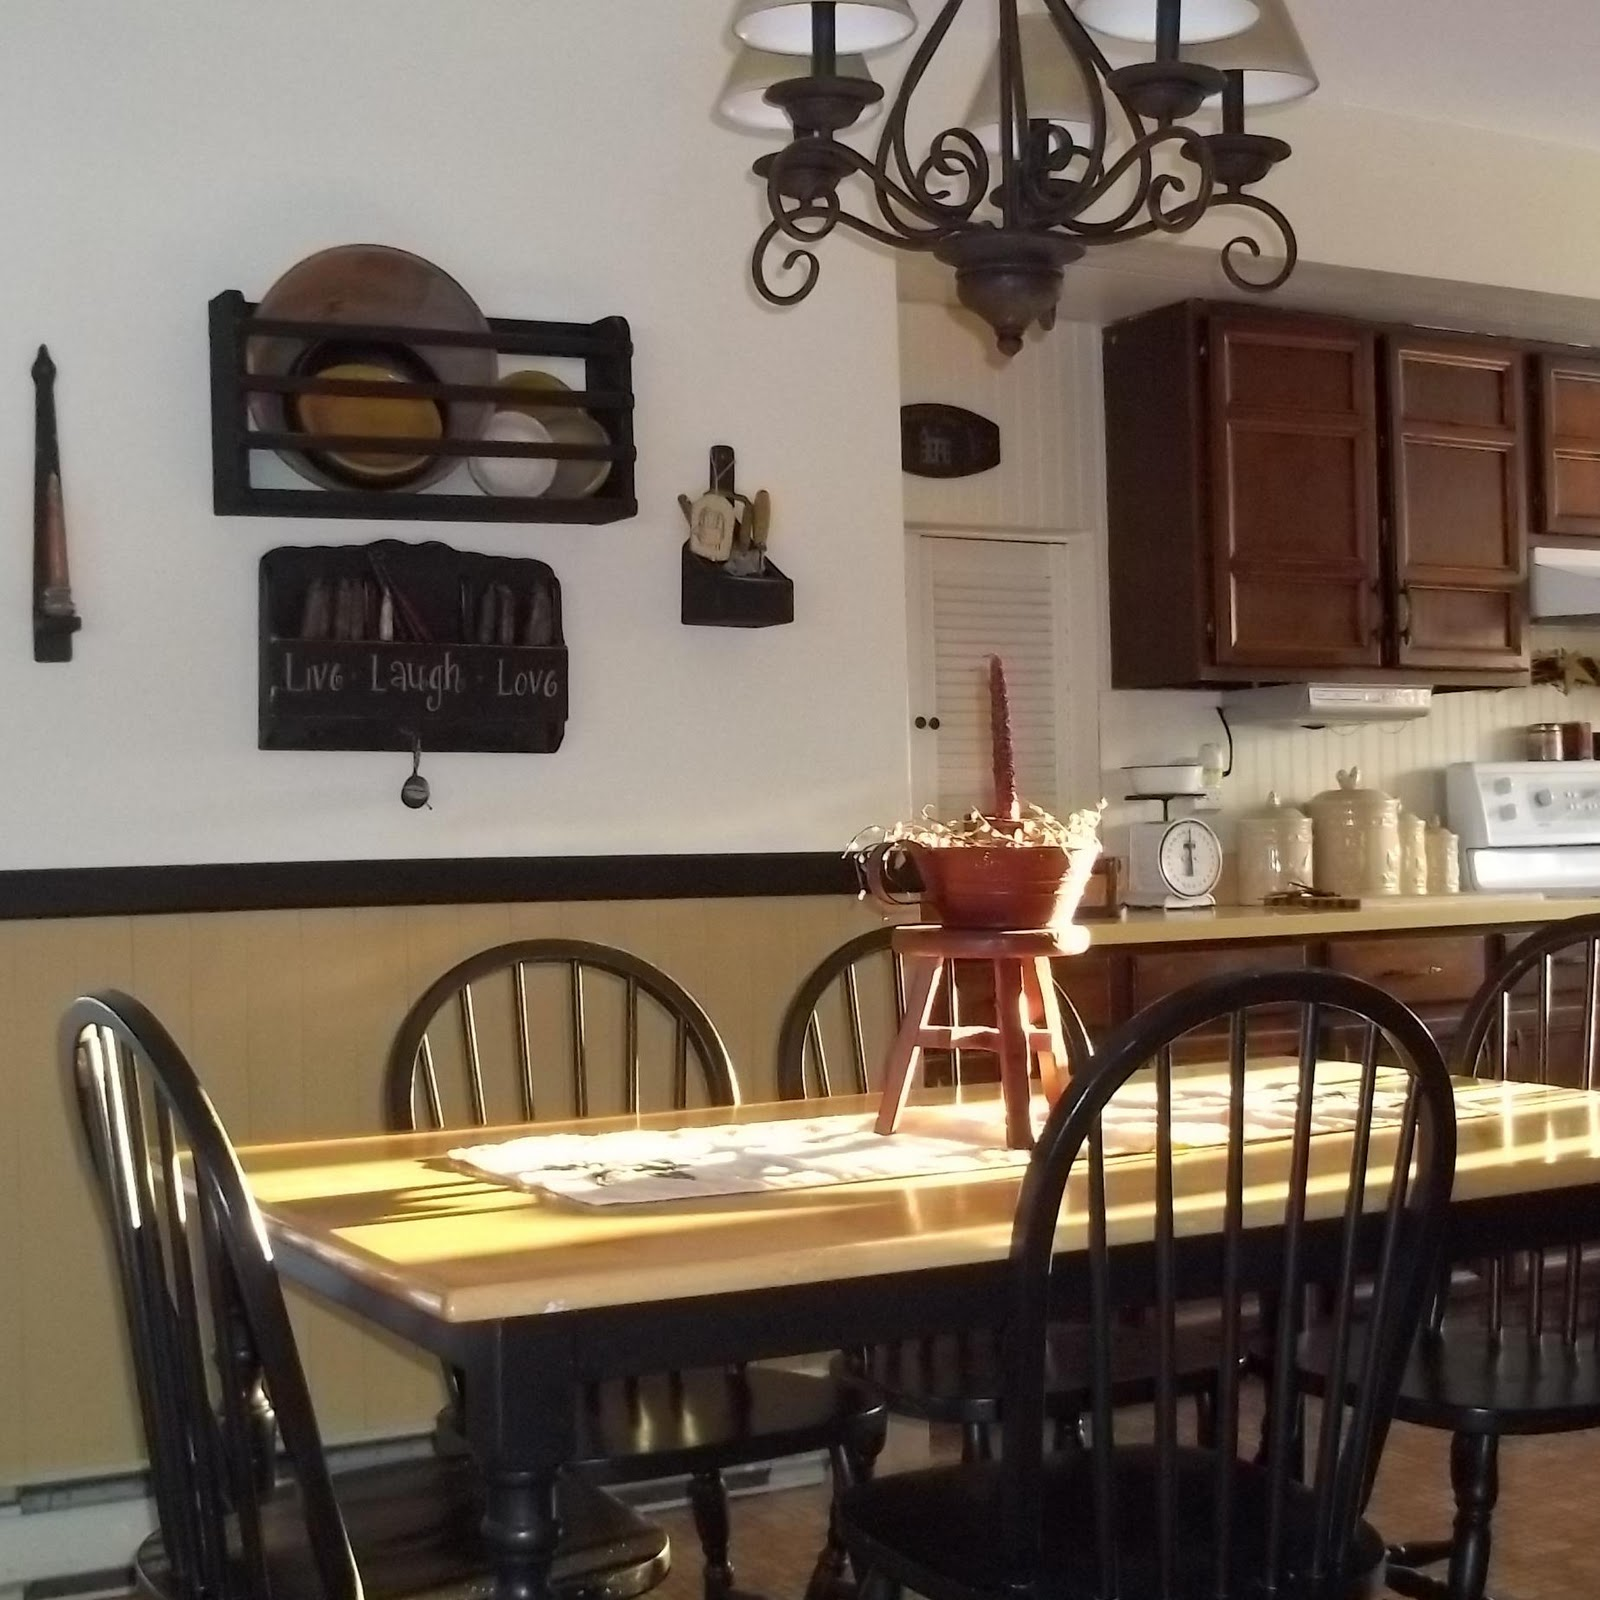 Frugal Home Decorating: THE BLESSED HEARTH: Frugal Decorating With Black Paint